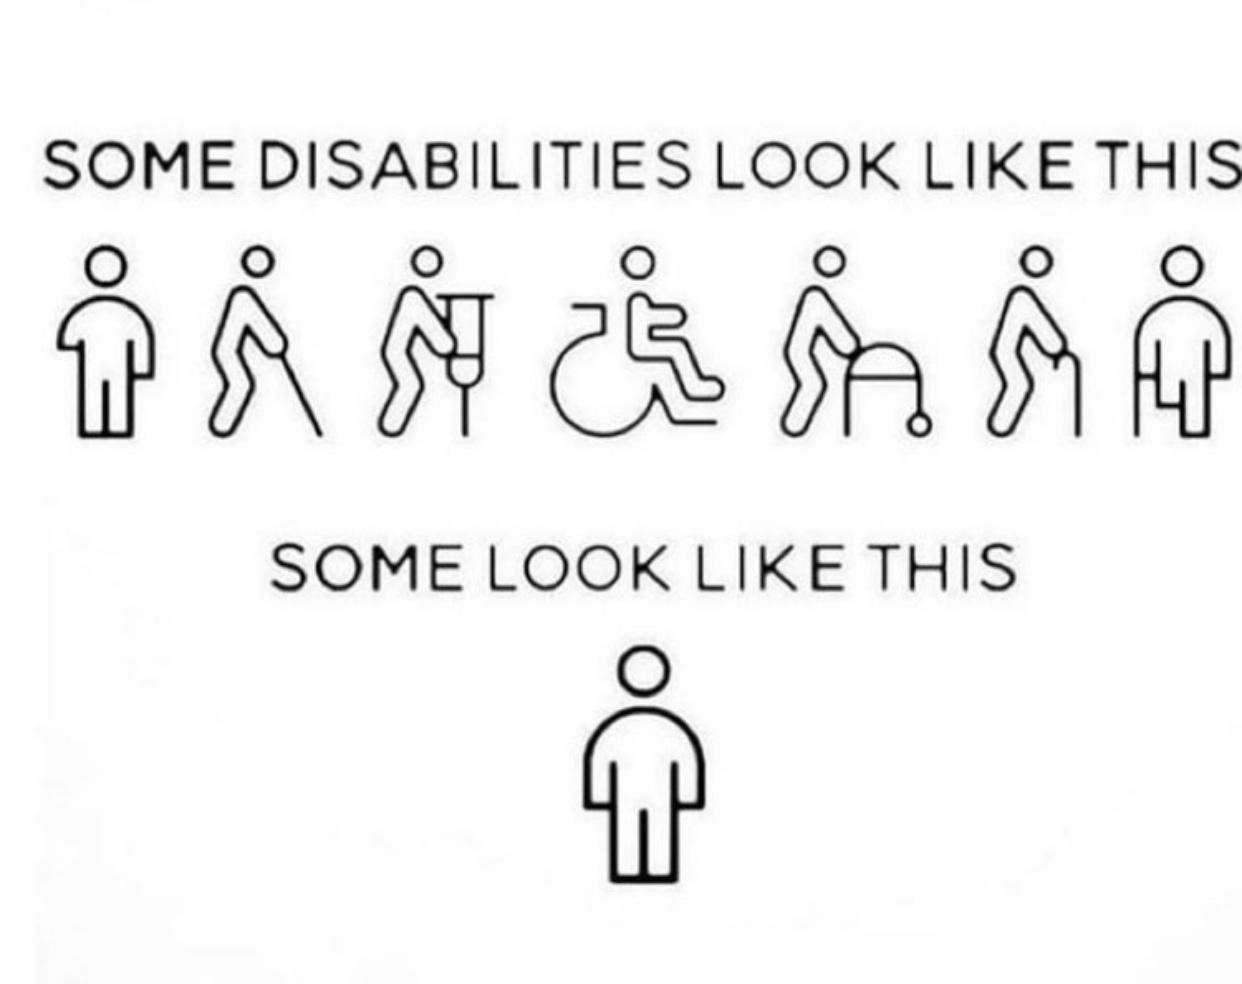 "This image has the words "" Some disabilities look like this"" accompanied by 7 representations of visible disabilities  (cane, wheelchair, walker etc.) and then the words ""Some look like this"" and there is an image of a person with no apparent disability."